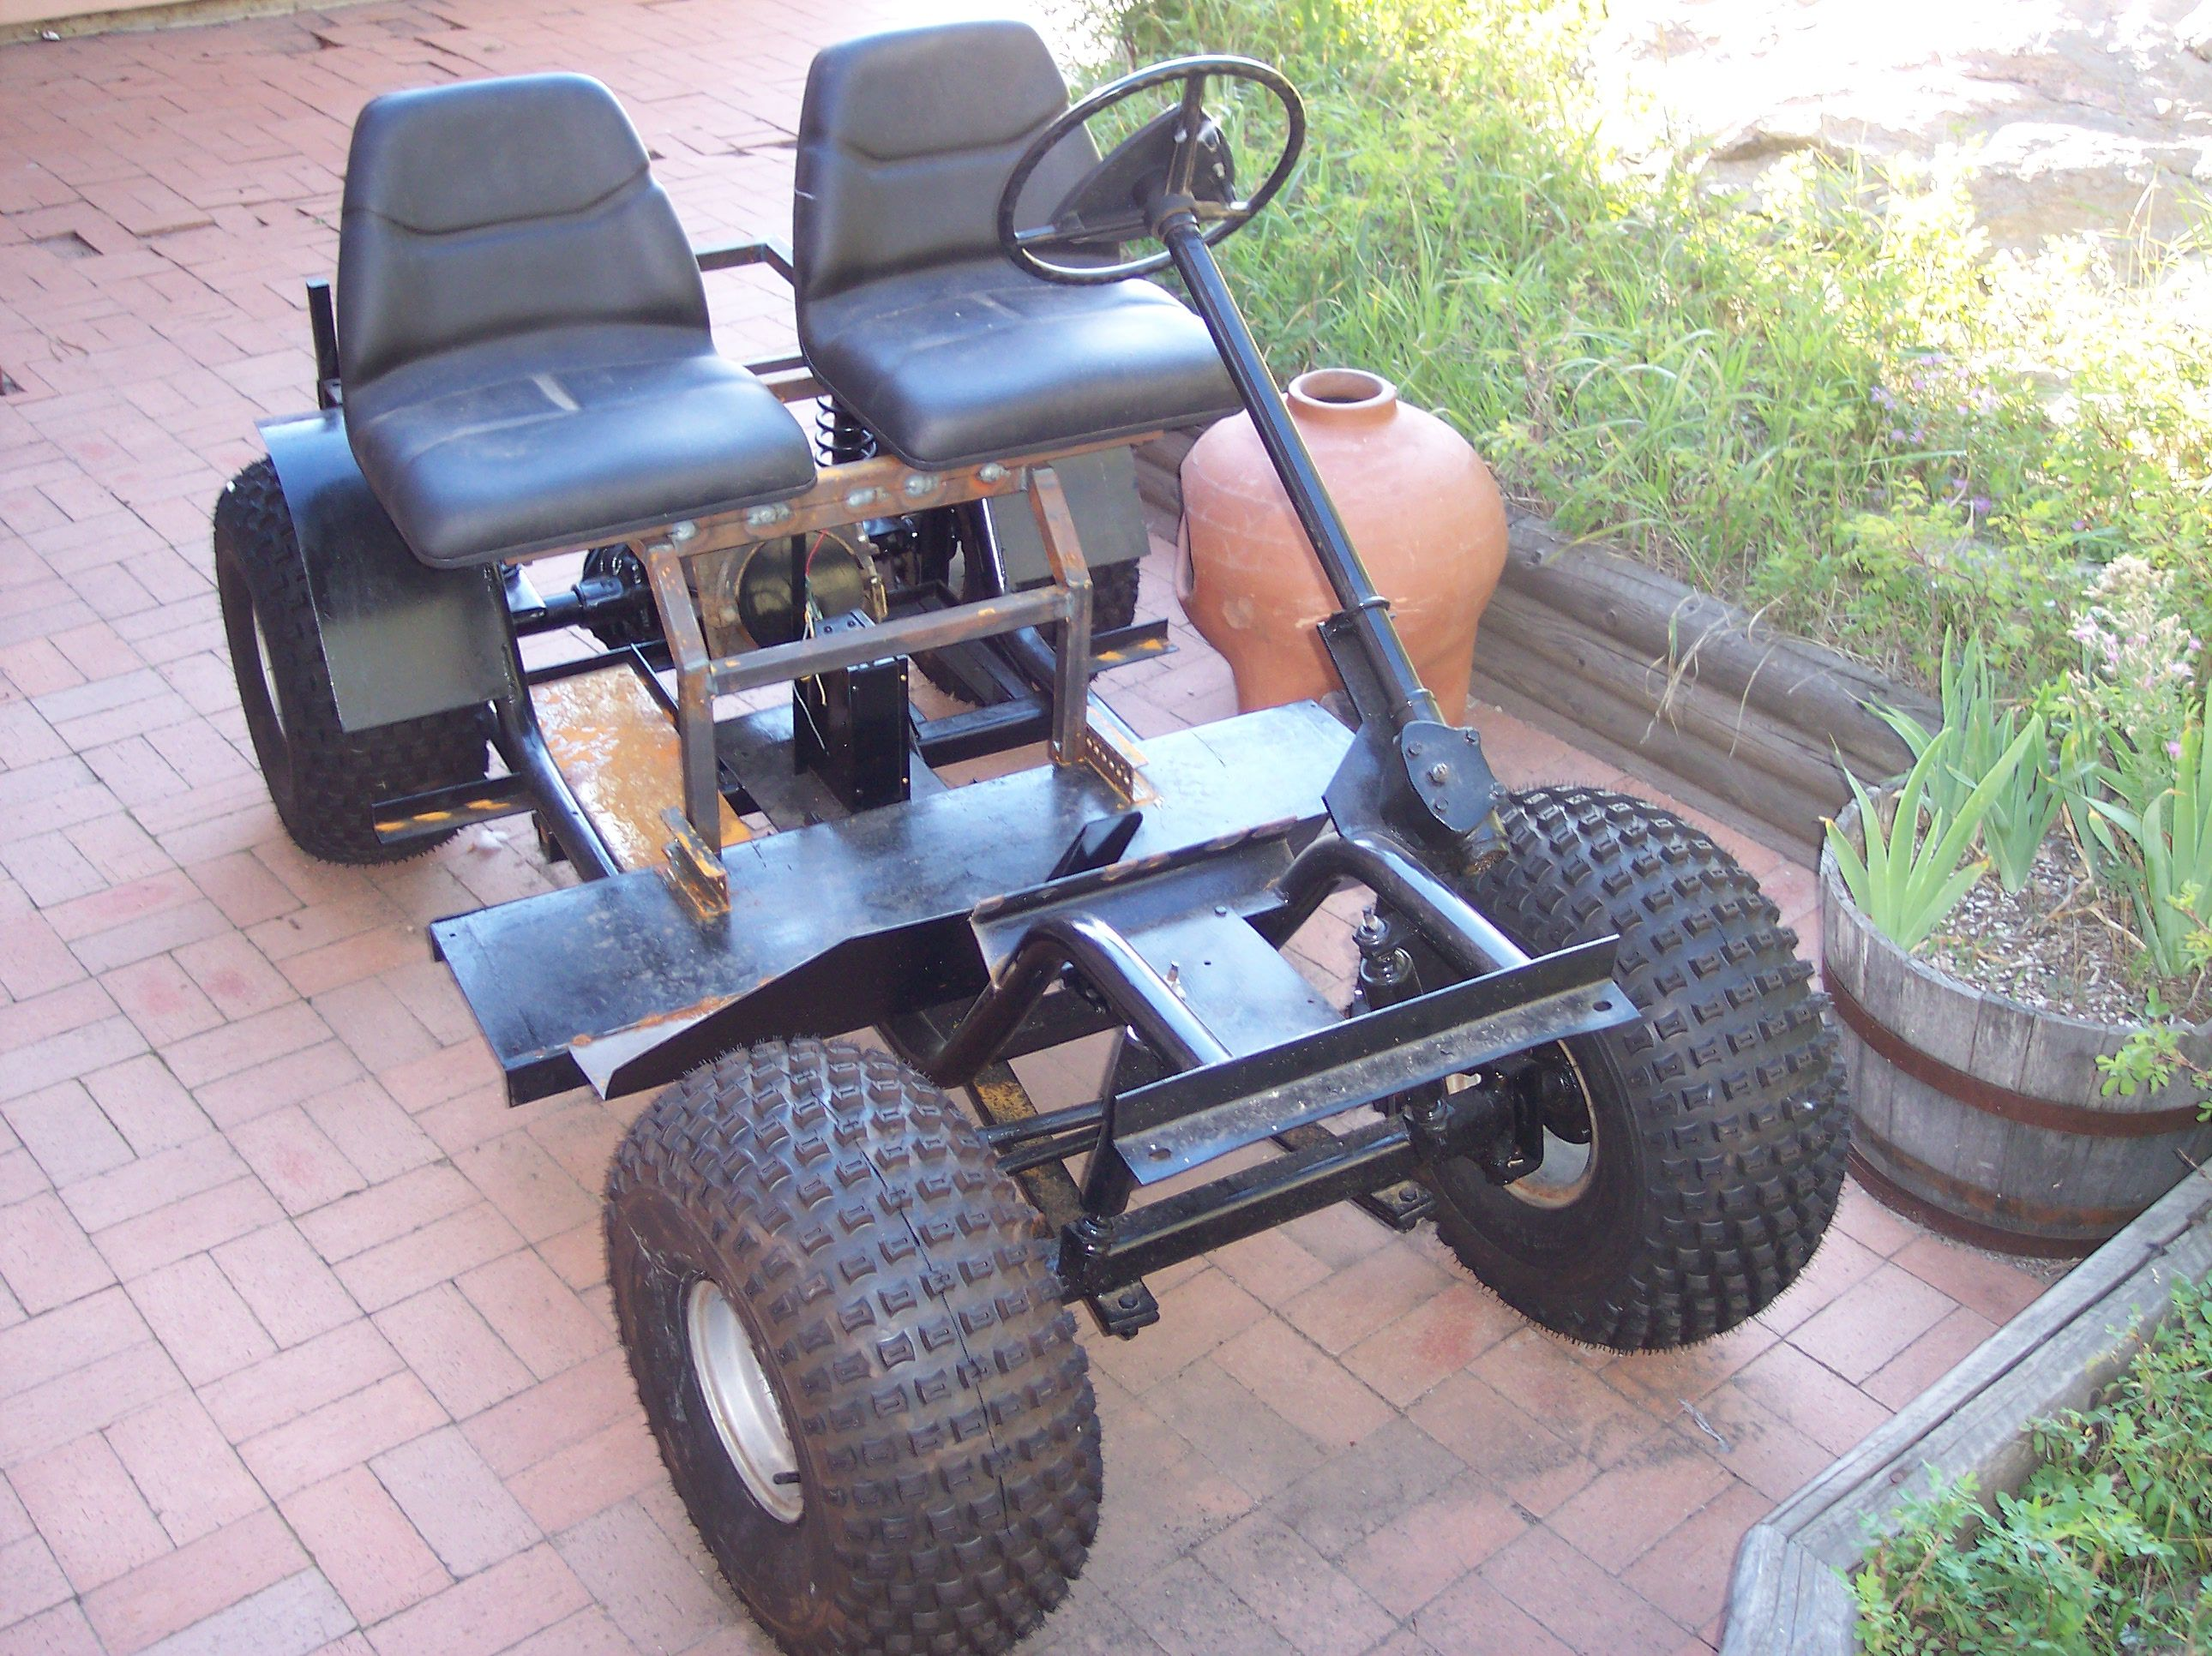 The beginnings of a golf cart modified to an off road